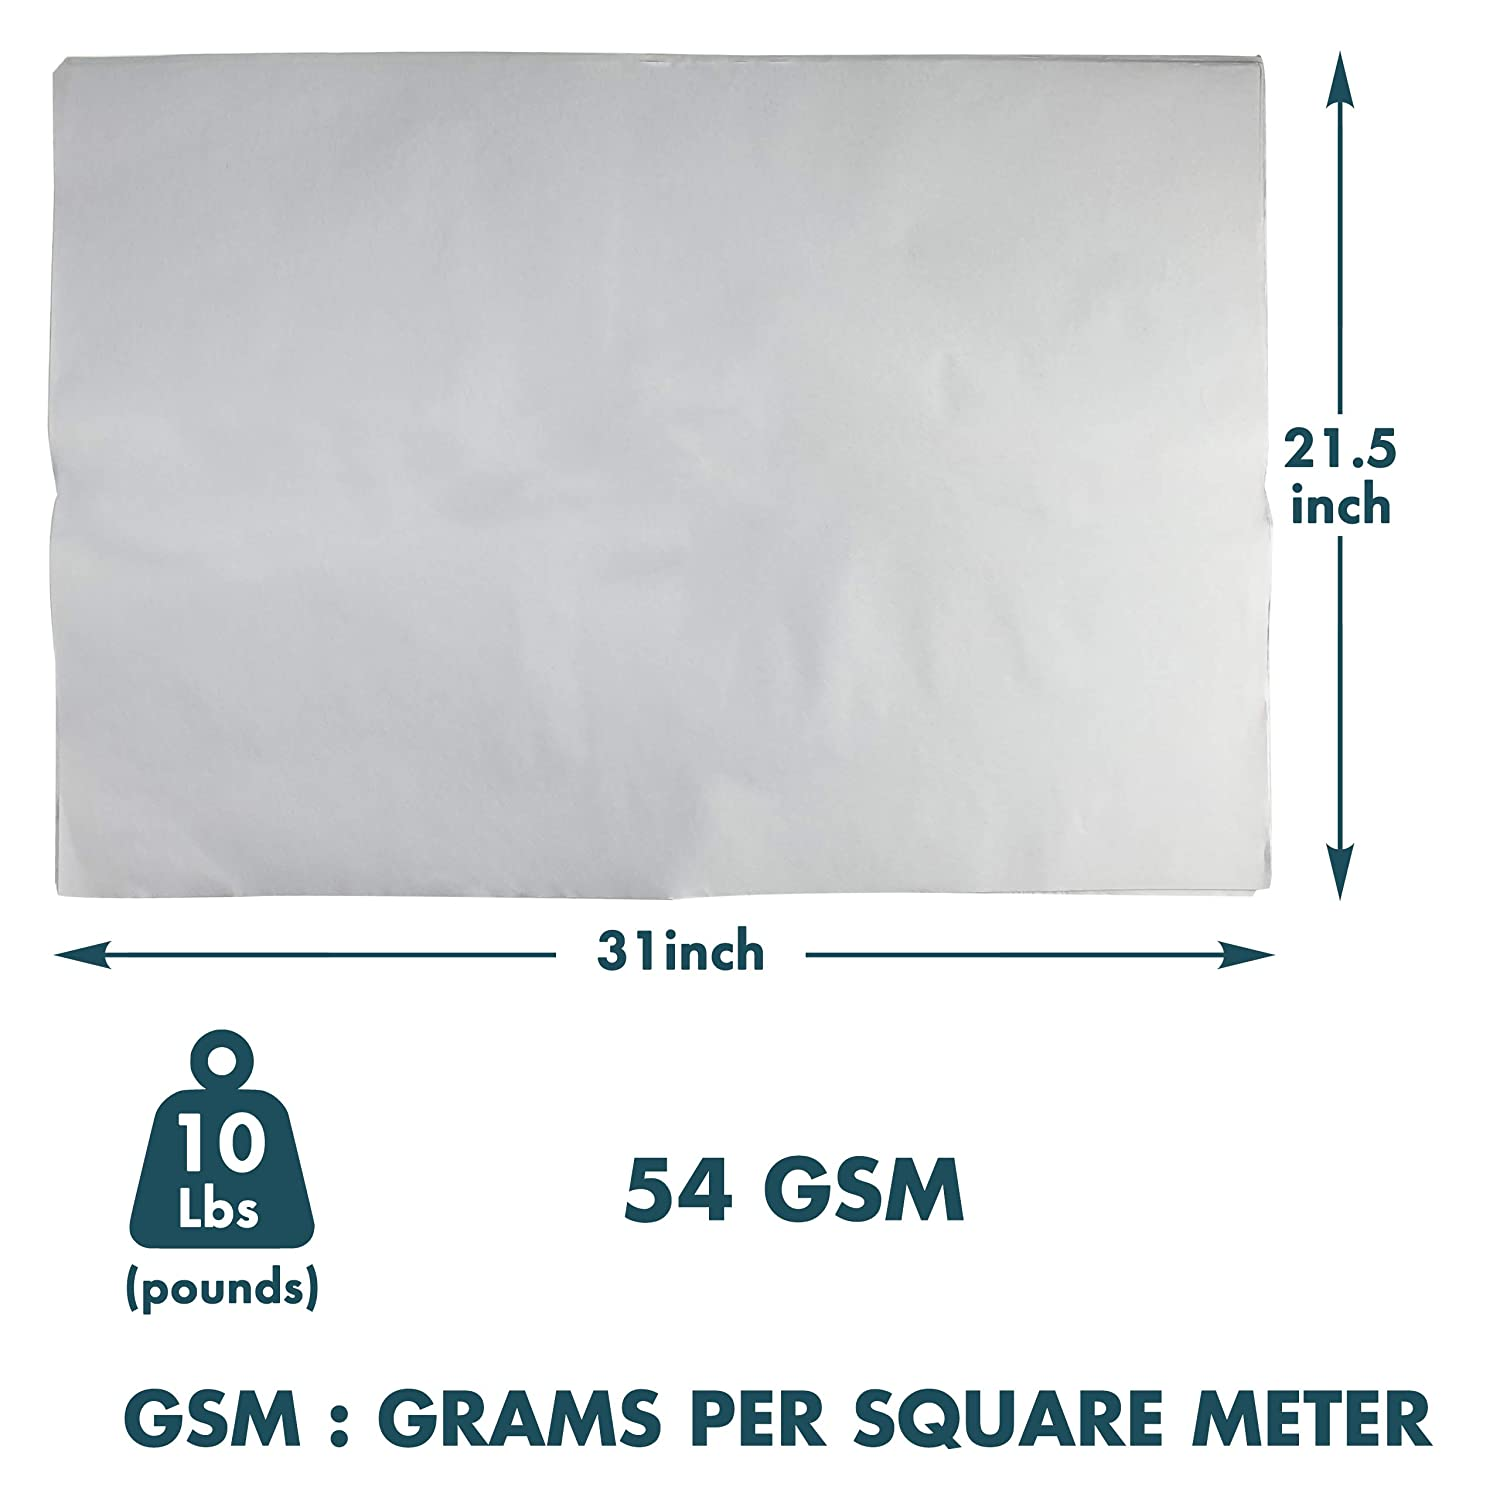 Packing Paper Sheets Moving Supplies Newsprint Paper 31 x 21.5 inch 54 GSM 10 lbs of Unprinted